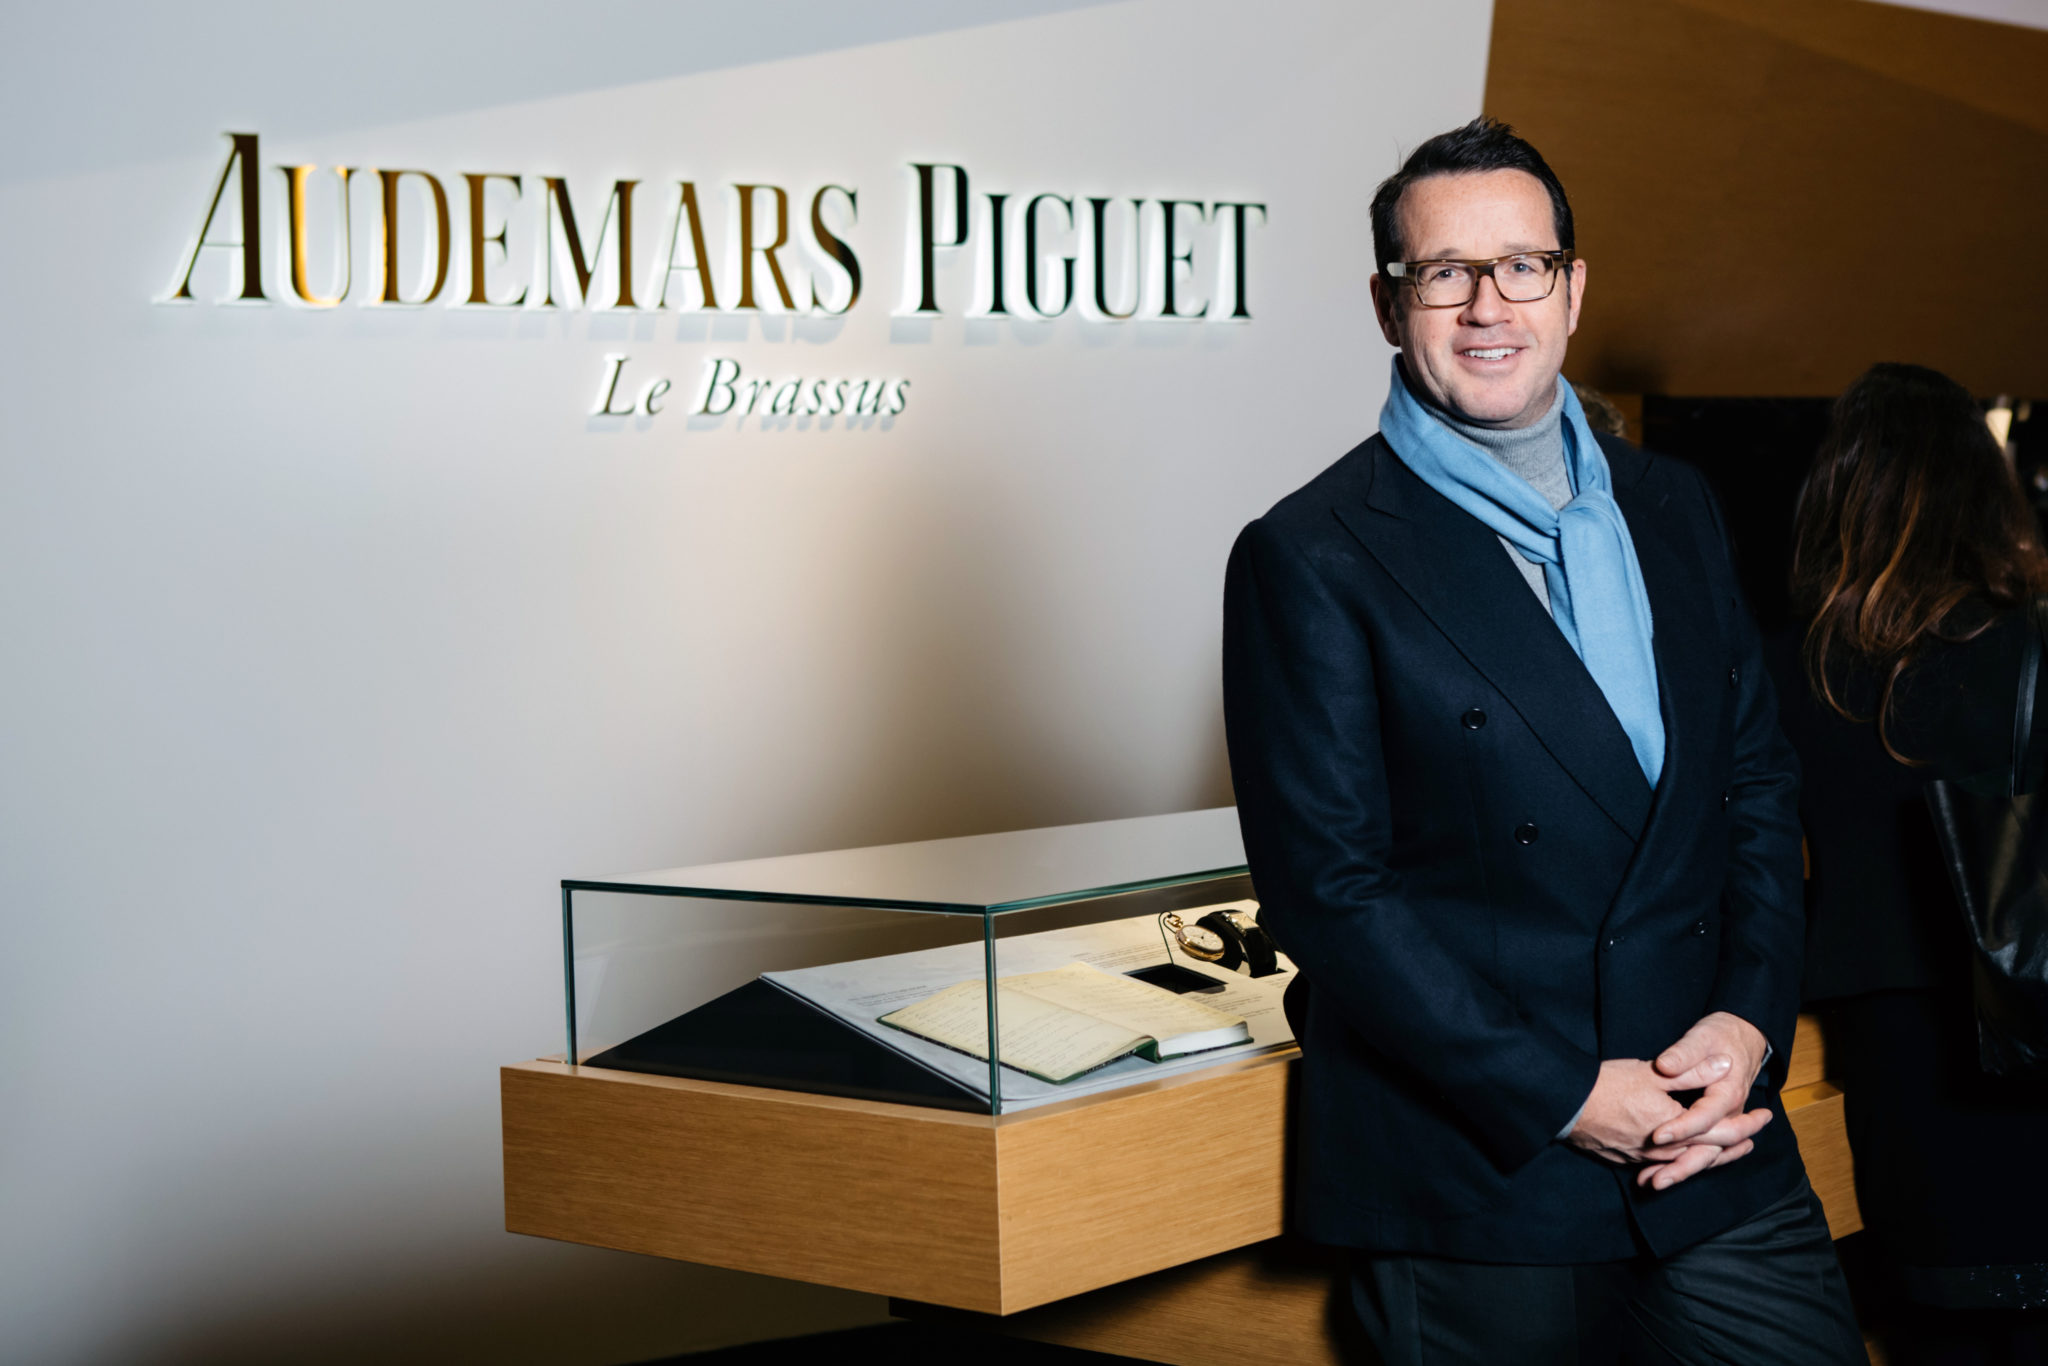 Audemars Piguet To Exceed Chf 1 Billion Revenue In 2018 And To Fully